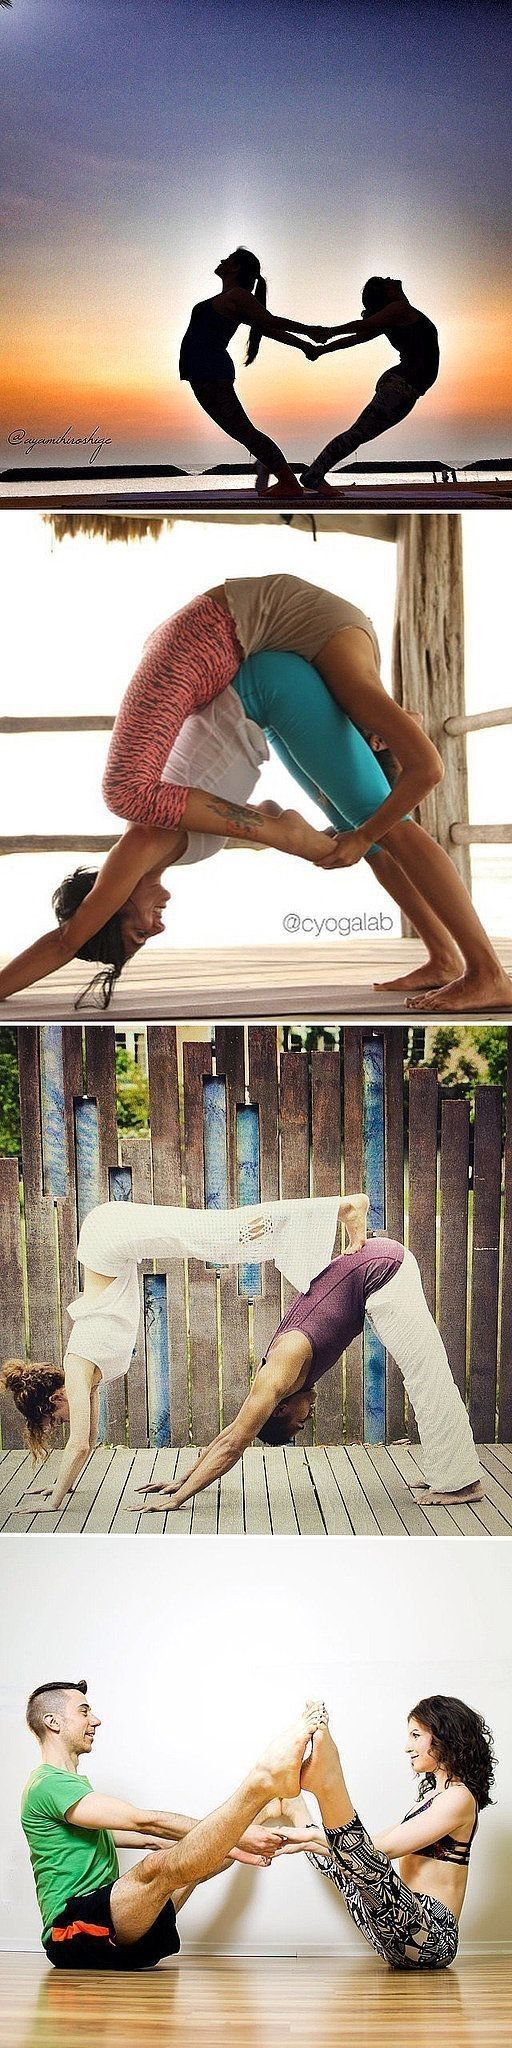 Partner Yoga Poses For Friends and Lovers #partneryoga